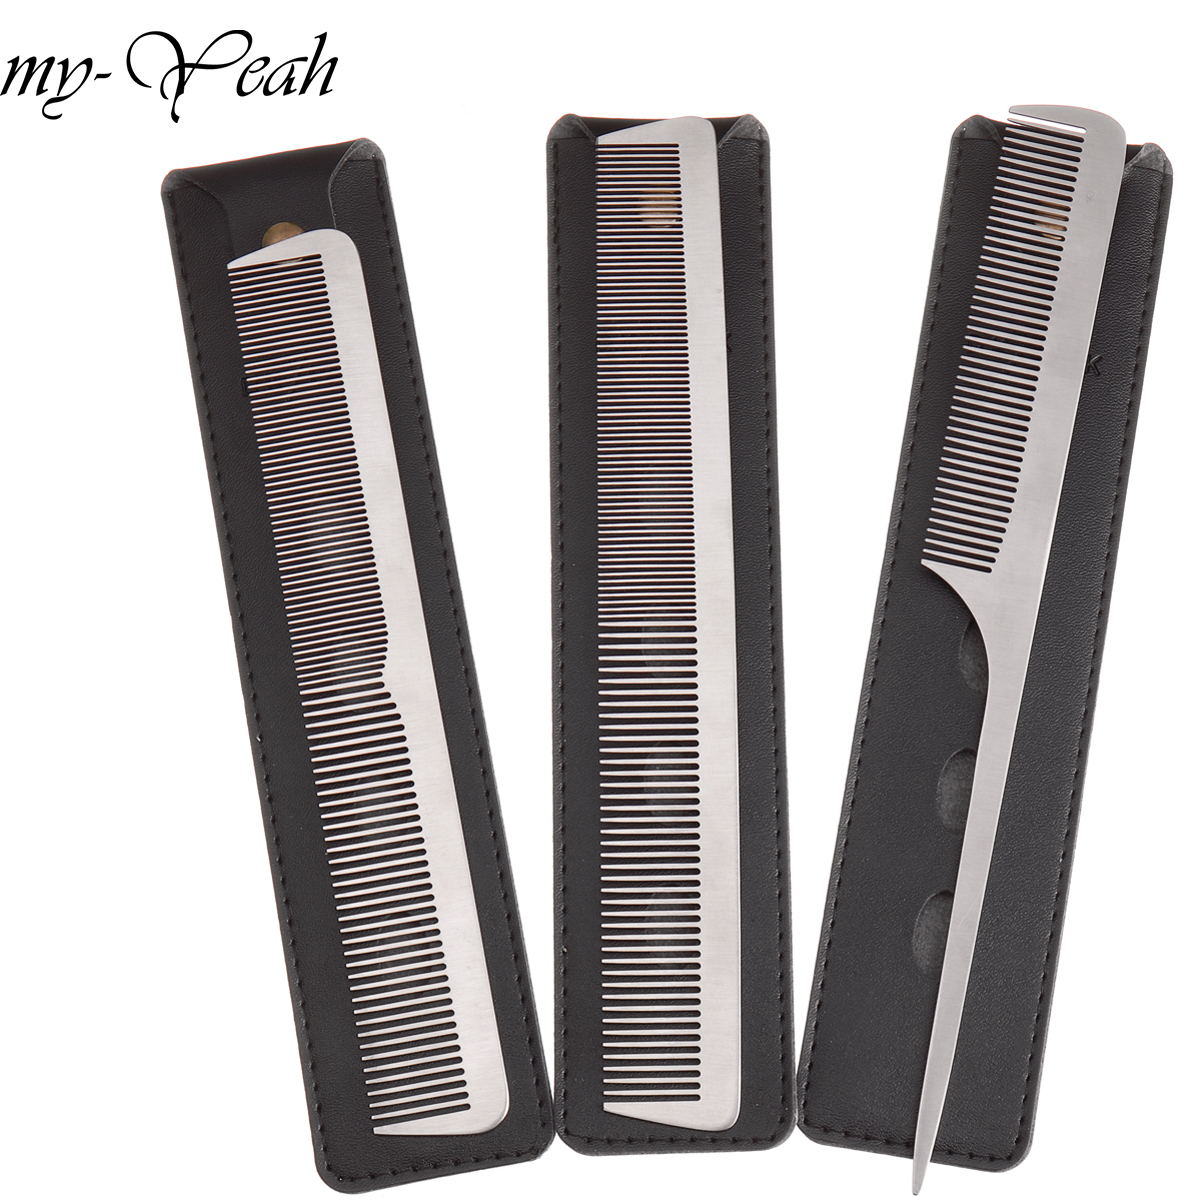 3 Style Metal Hair Comb Detangling Hairstyling Straightening Section Comb Barber Haircutting Combs With Leather Case